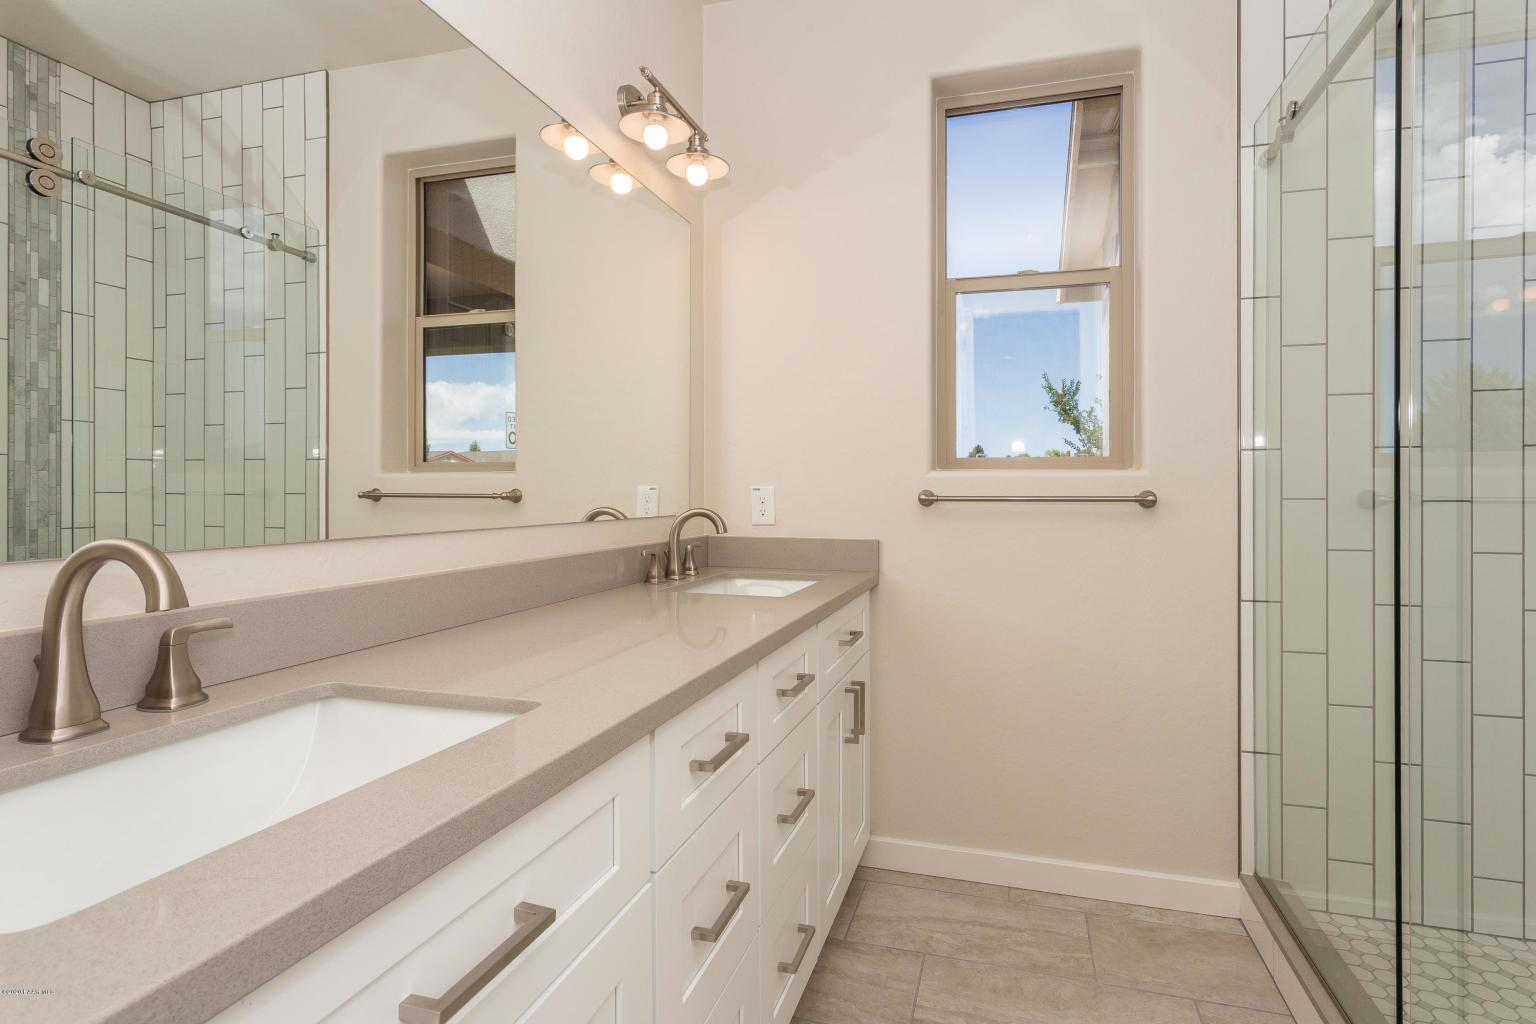 Bathroom featured in the Custom By Highlands Homes in Prescott, AZ